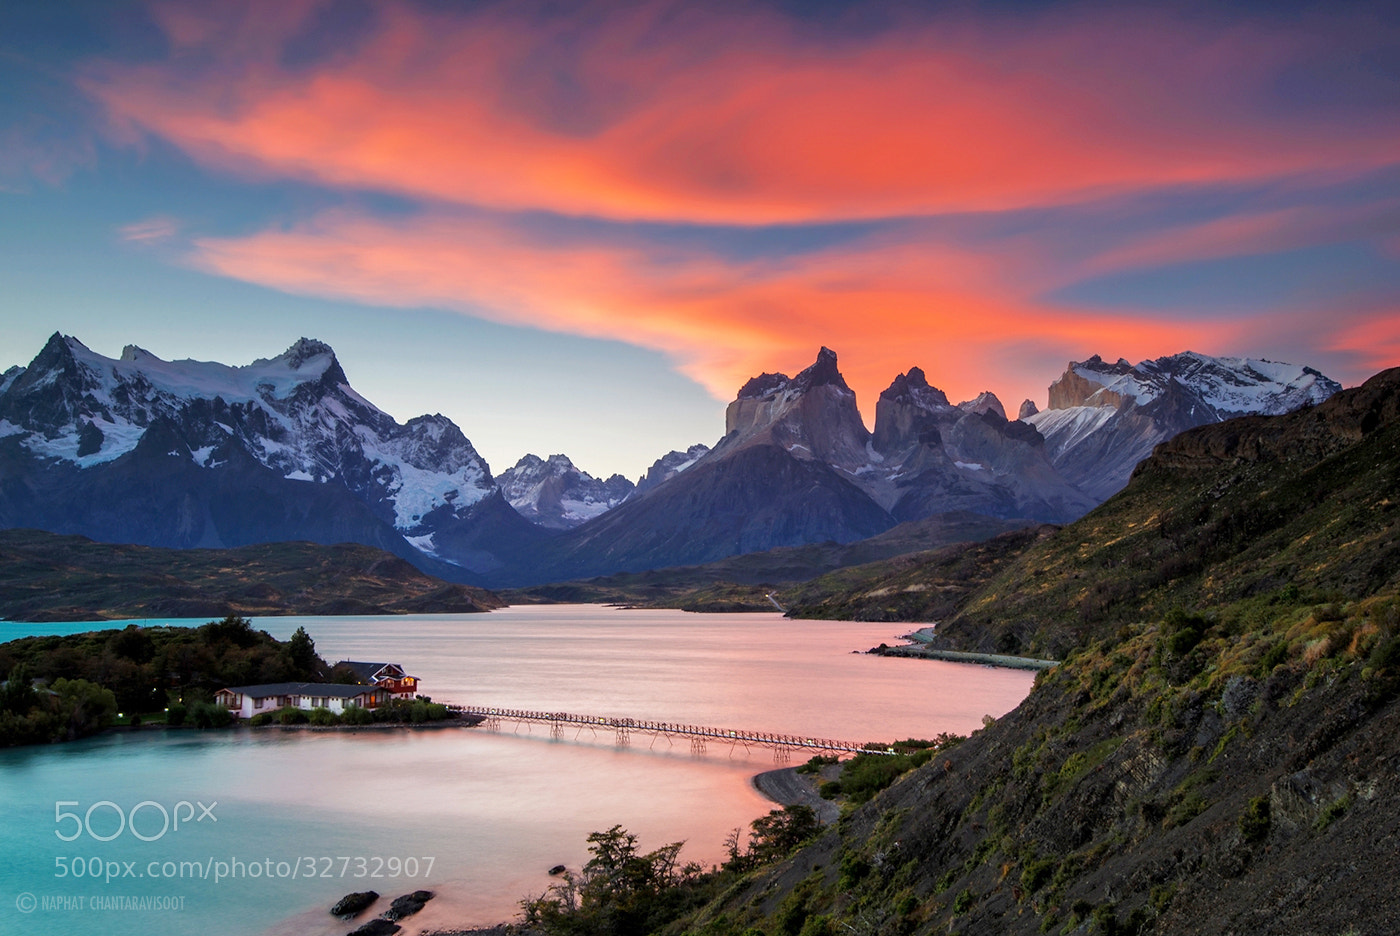 Photograph Sunset at Torres Del Paine by Nae Chantaravisoot on 500px